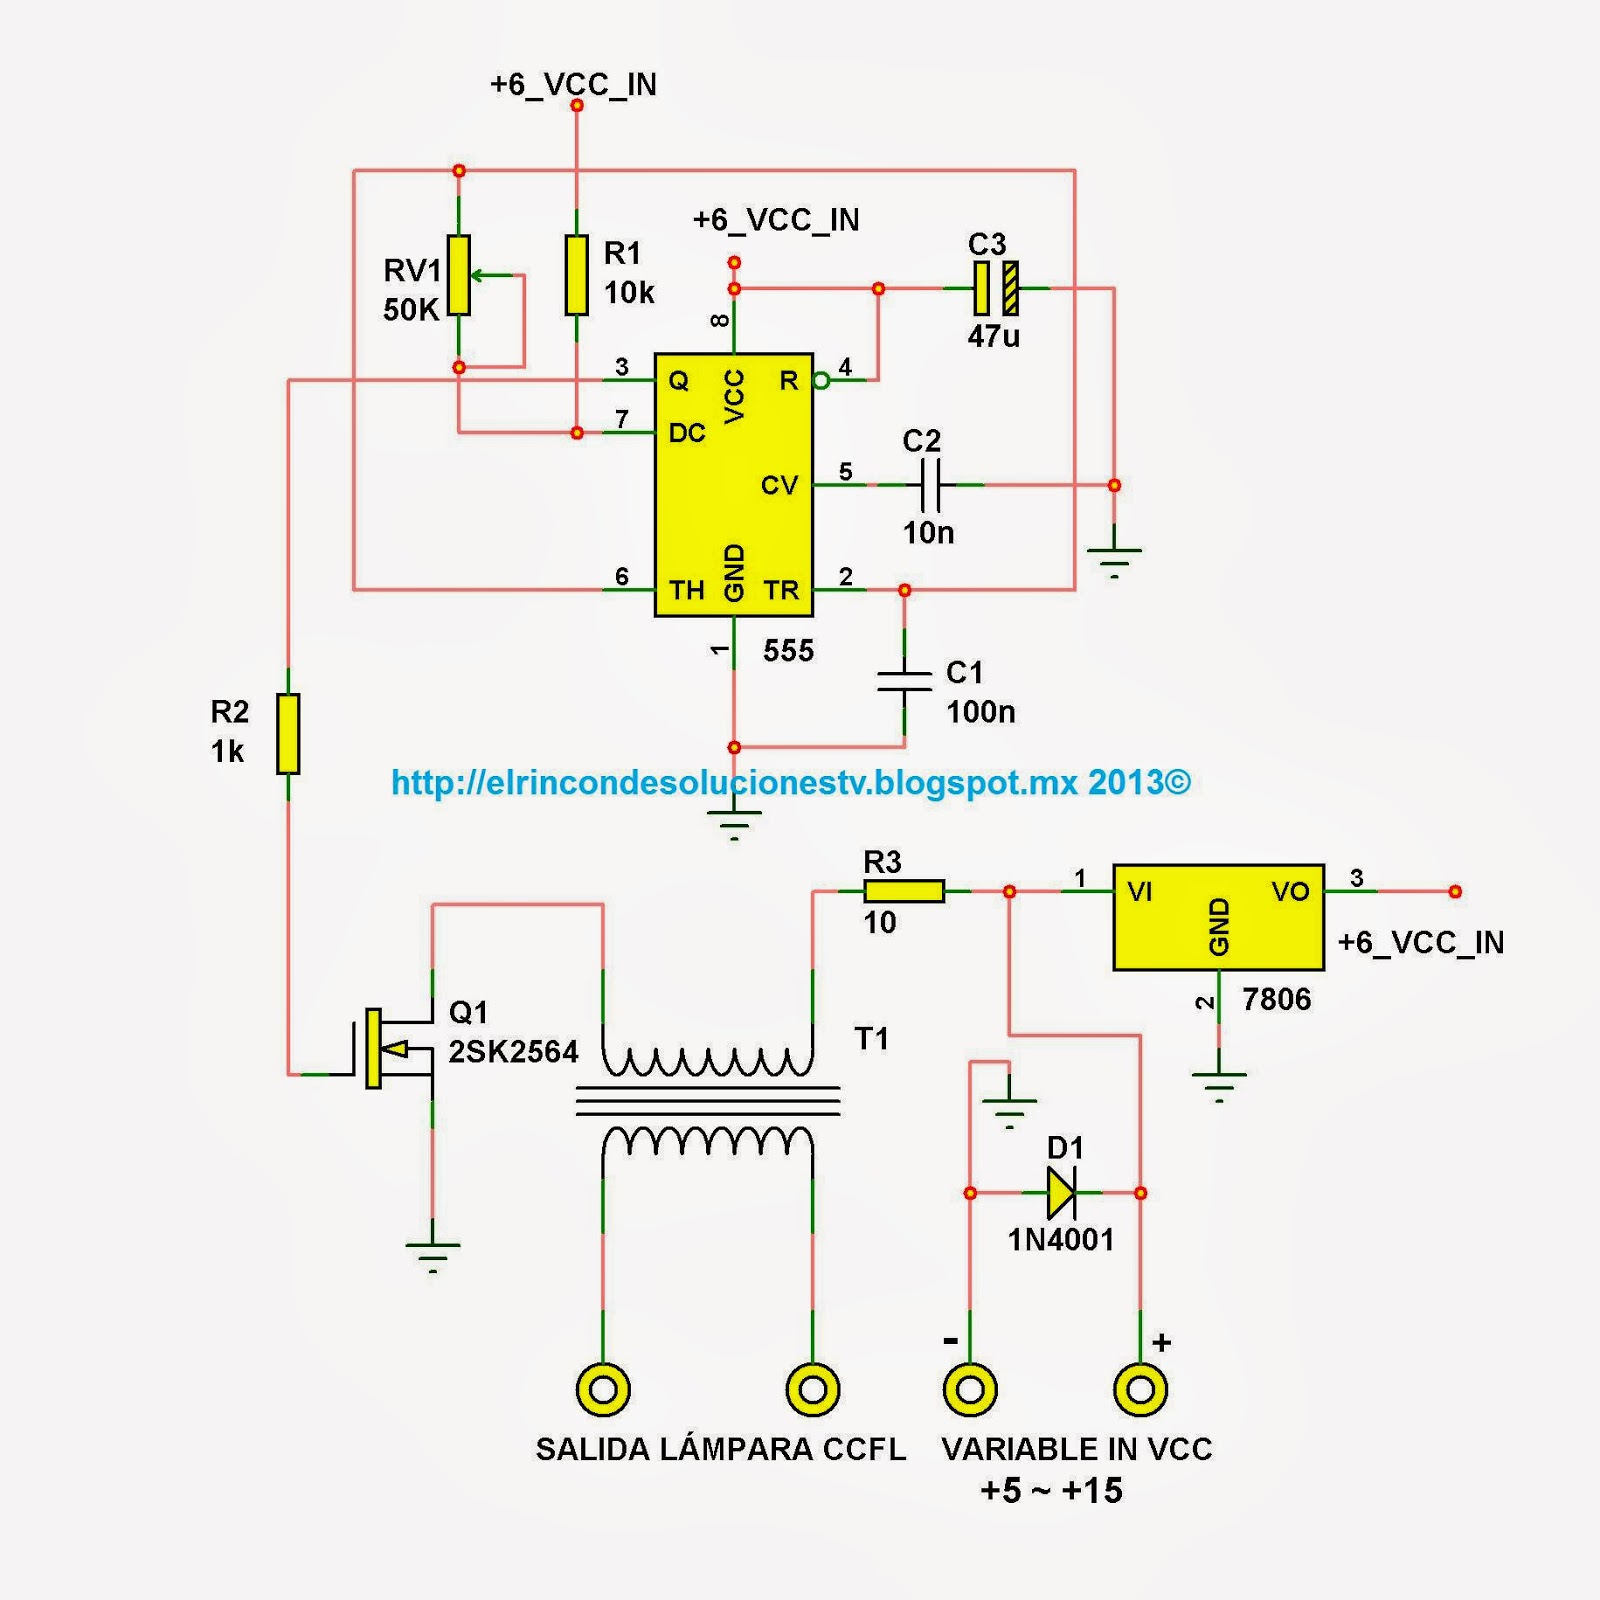 hight resolution of samsung refrigerator schematic diagram samsung get free power cord connector types extension cord wiring diagram